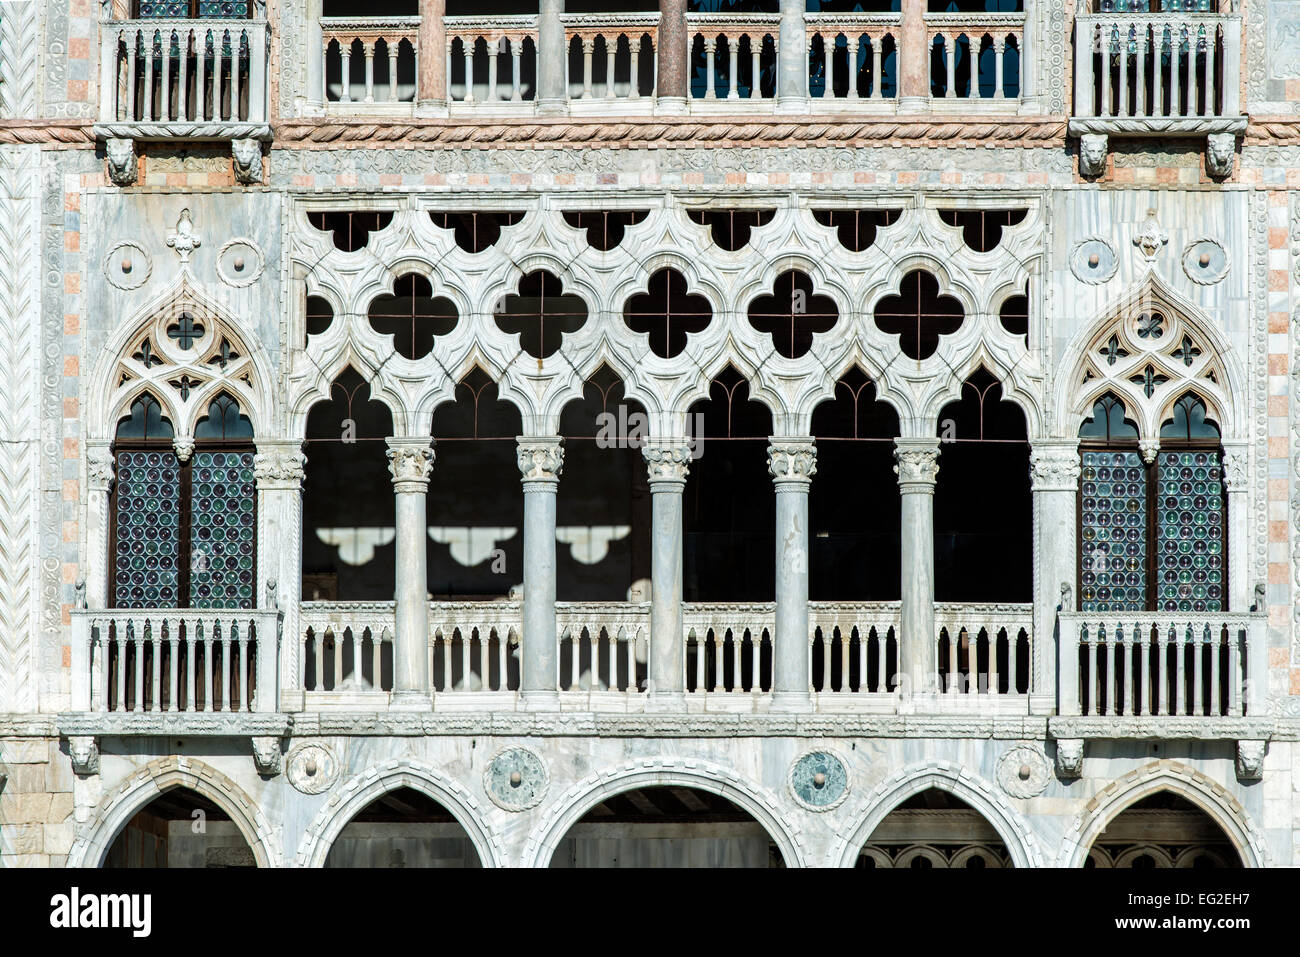 Detail of Ca' d'Oro palace or Palazzo Santa Sofia facade overlooking the Grand Canal, Venice, Veneto, Italy - Stock Image